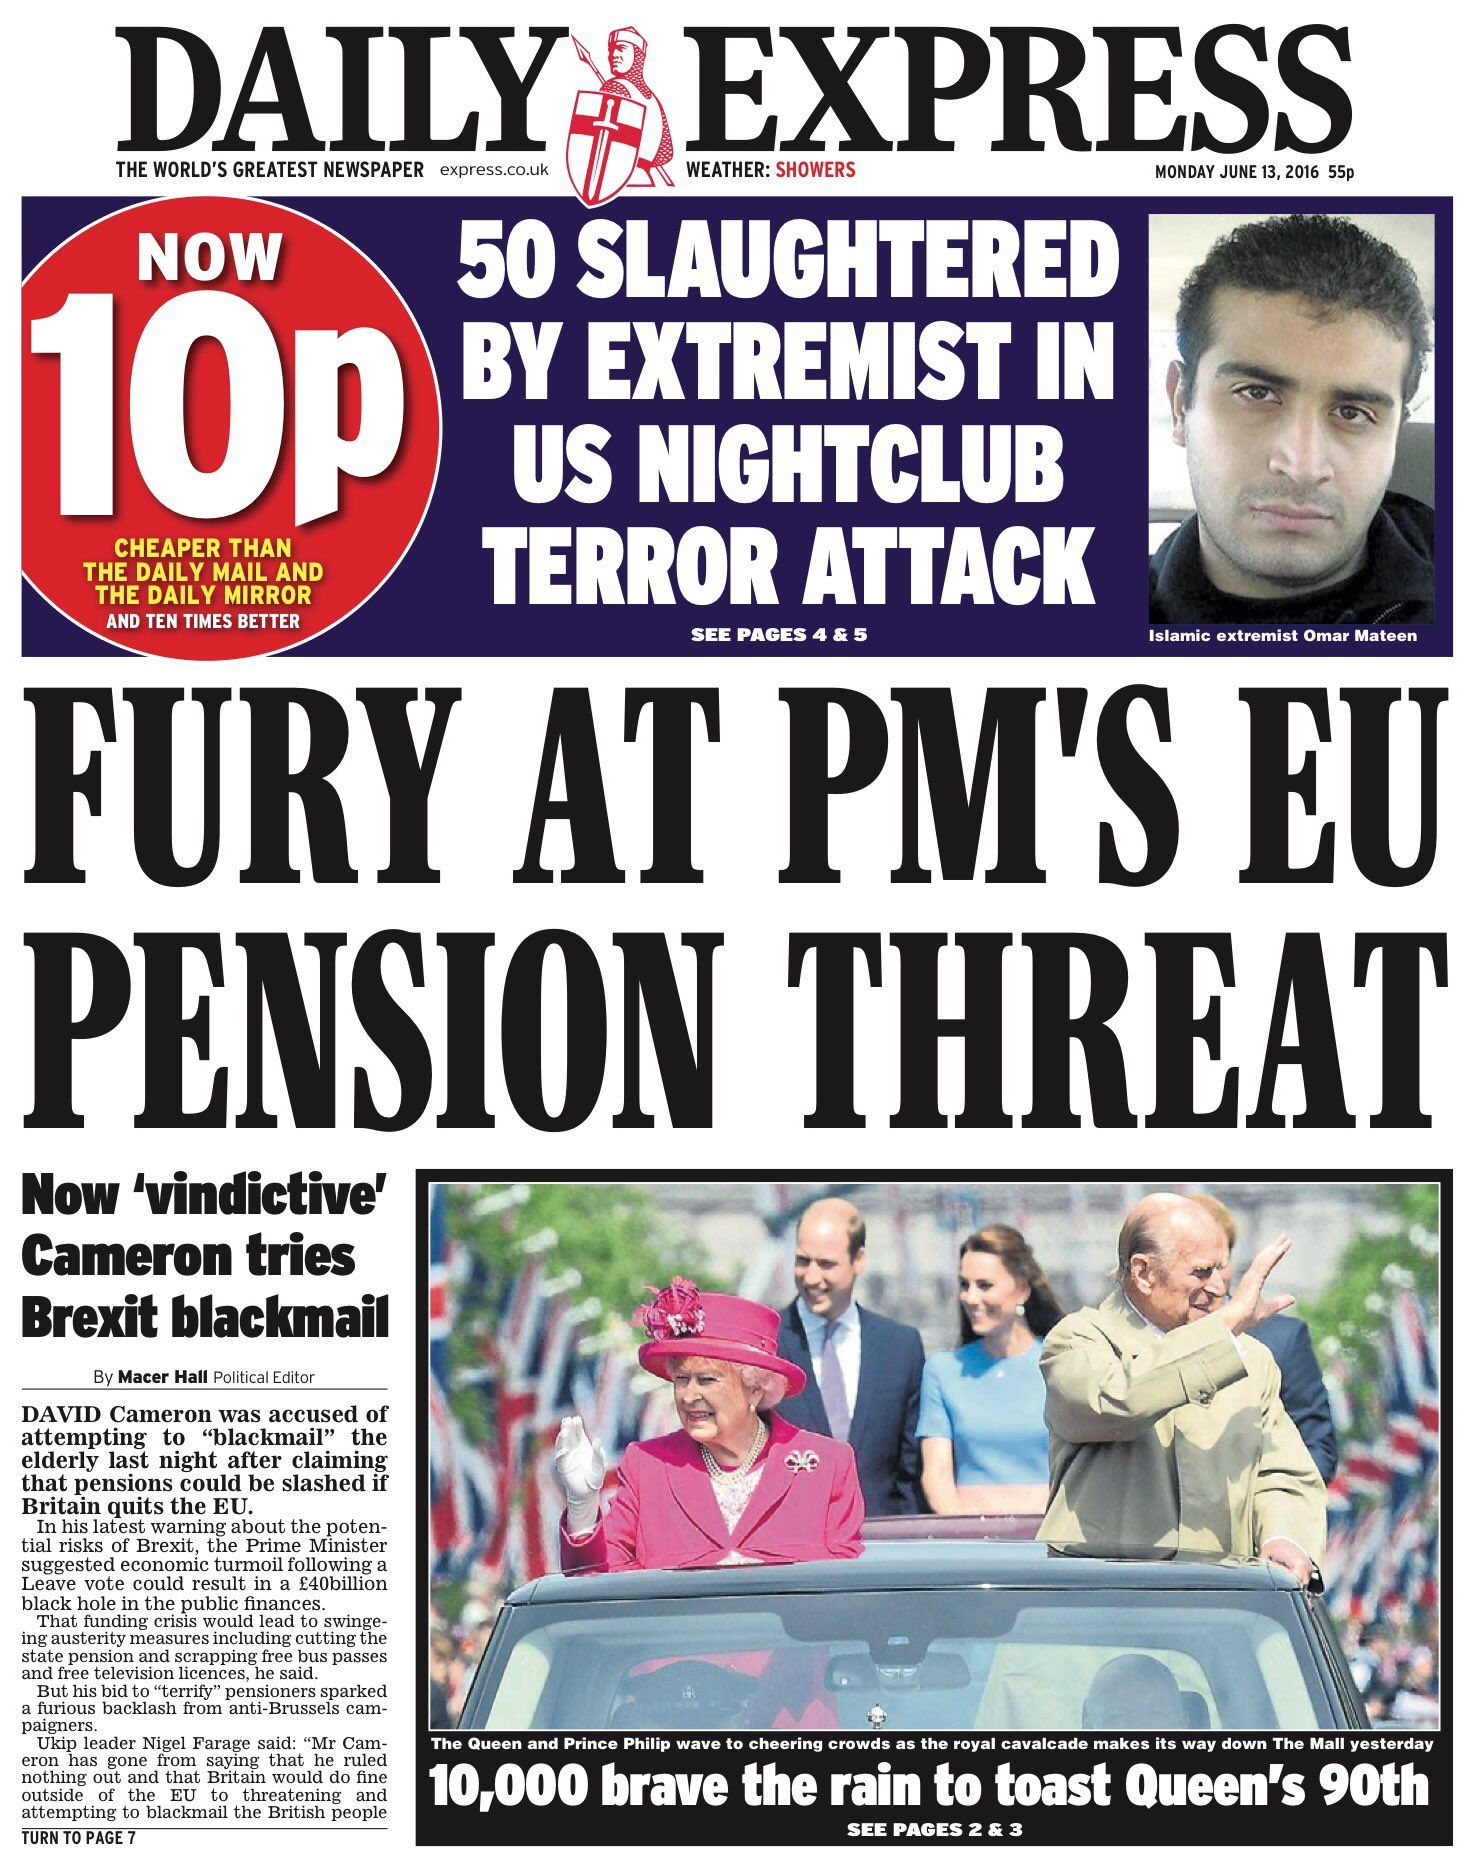 Monday's Daily Express: Fury at PM's EU pension threat #tomorrowspaperstoday #bbcpapers https://t.co/wCOserkLPa